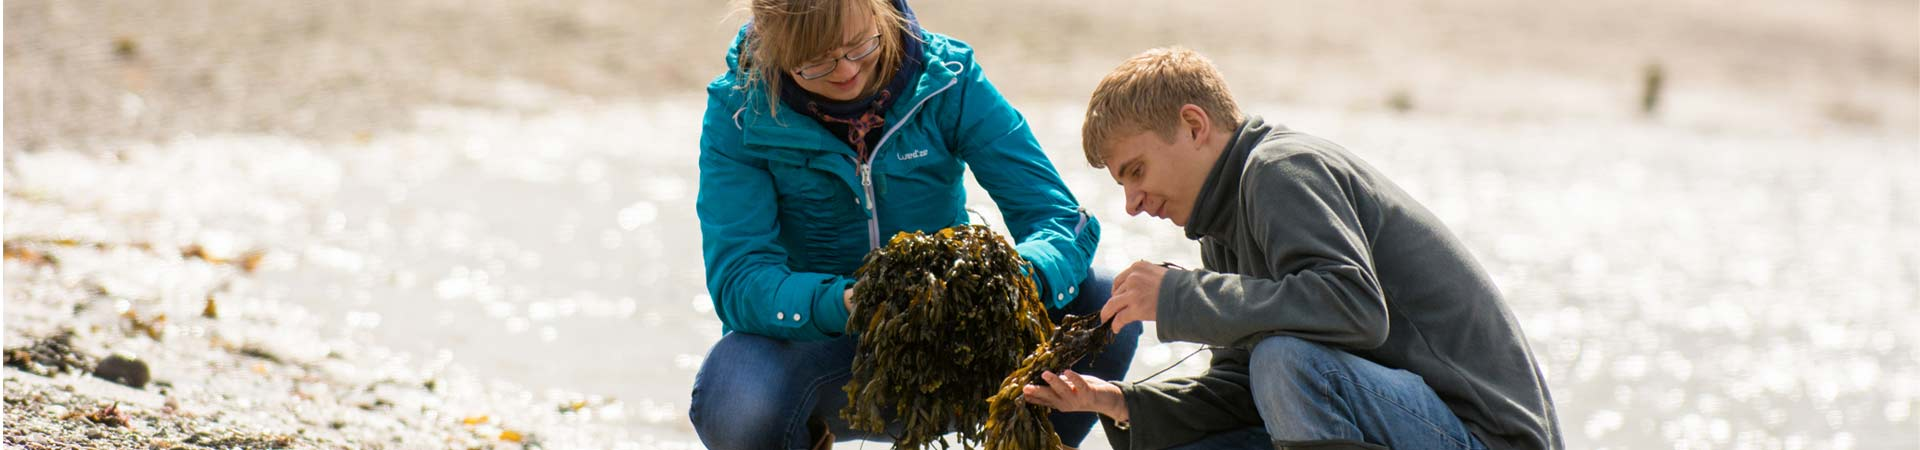 Image showing two students on the shore collecting seaweed